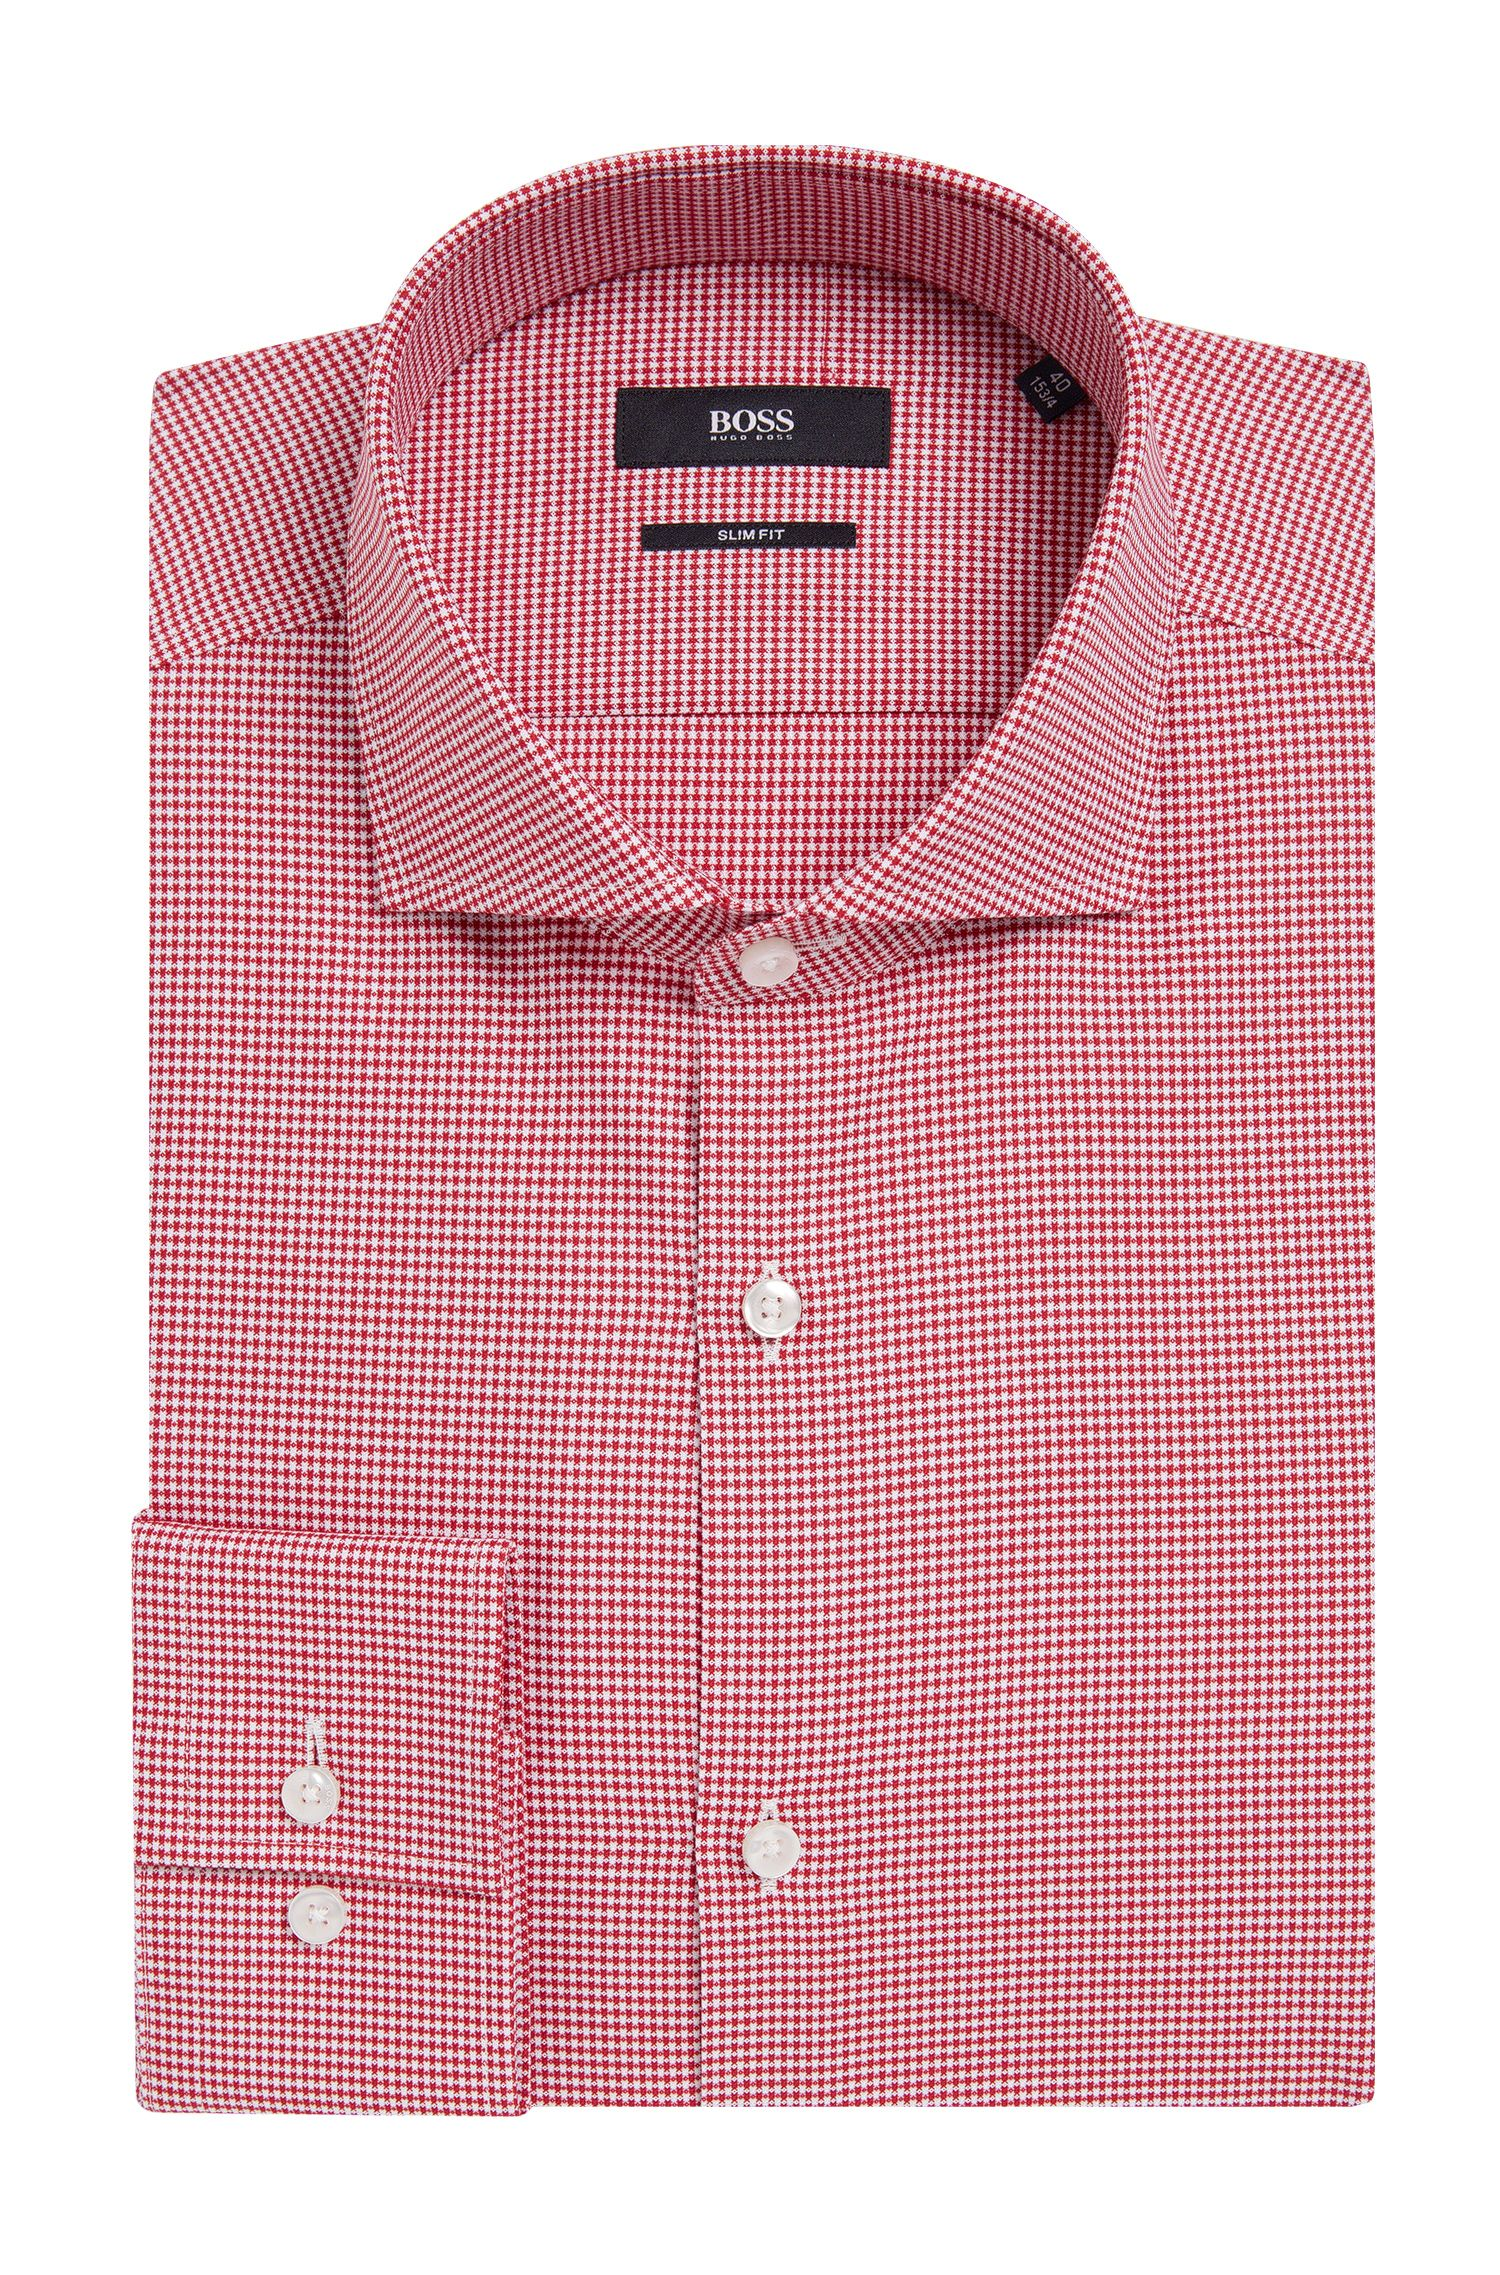 Houndstooth Cotton Dress Shirt, Slim Fit | Jason